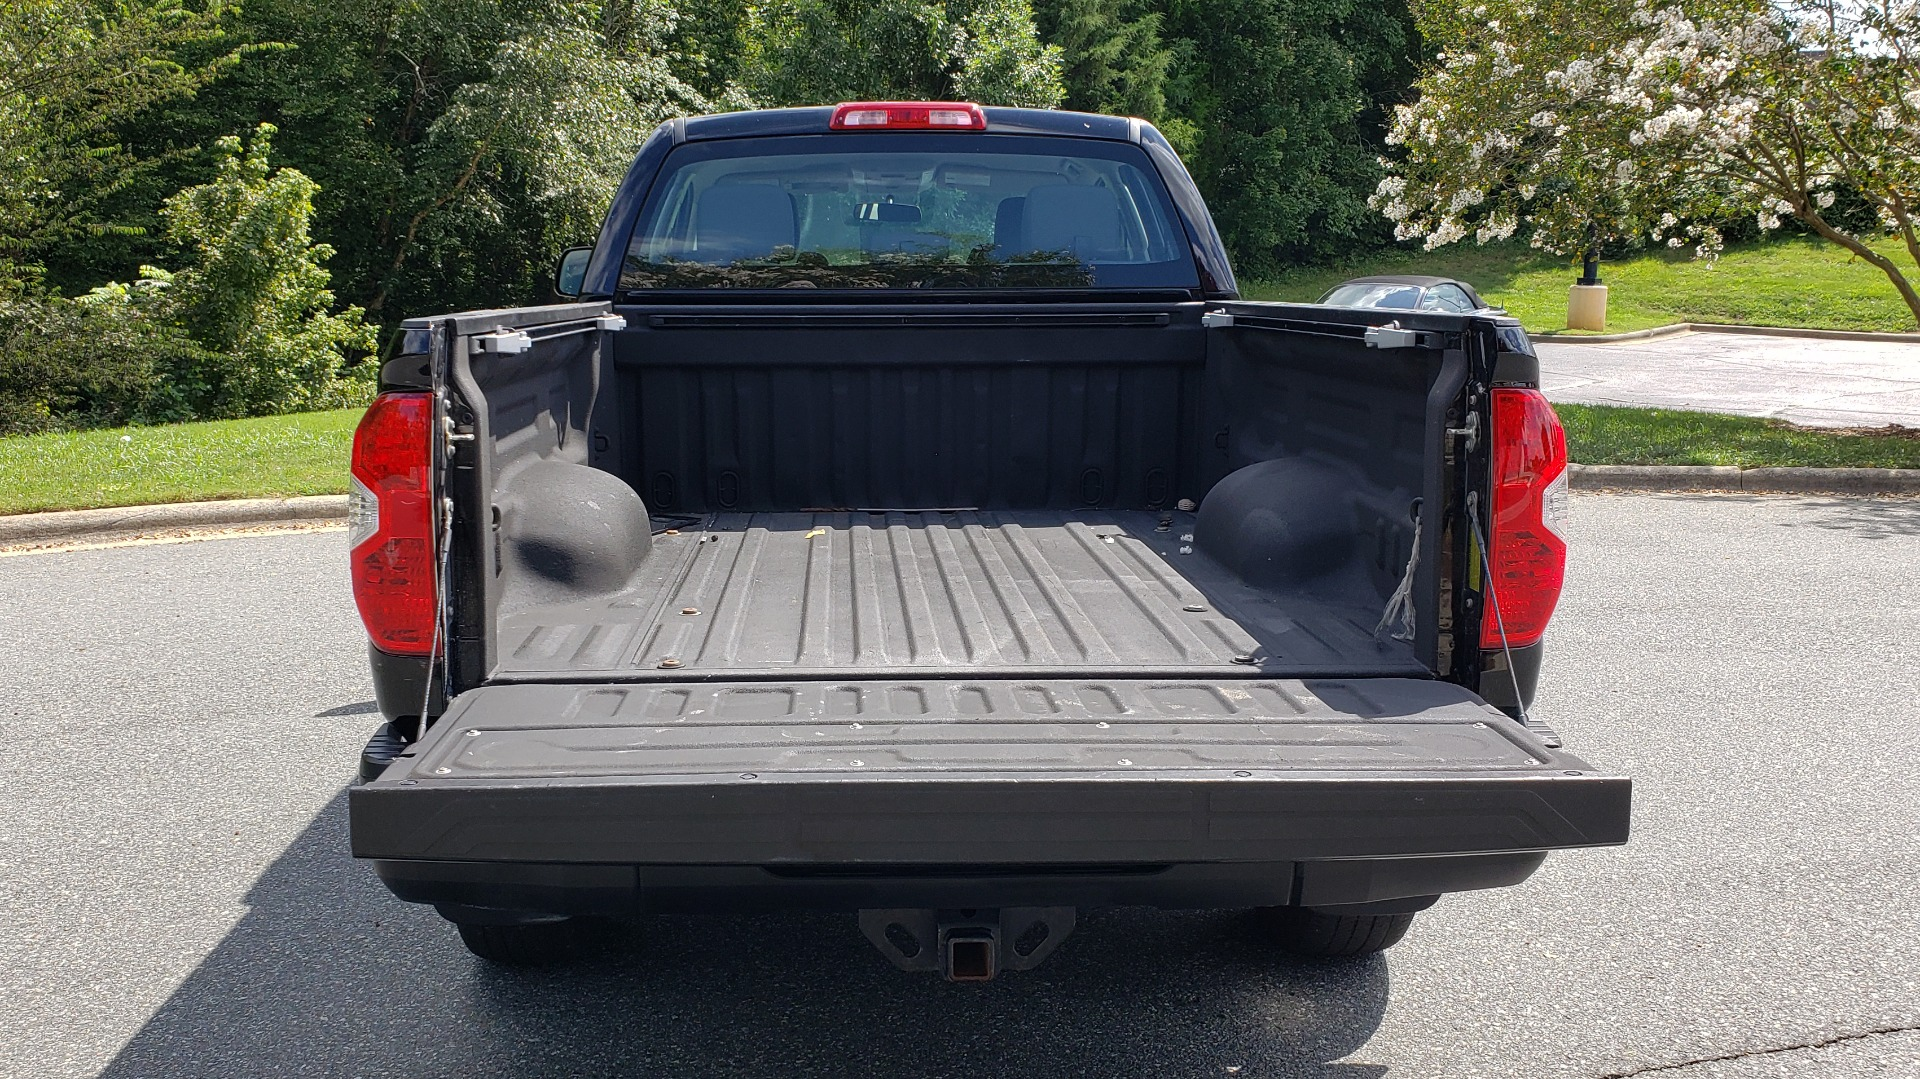 Used 2017 Toyota TUNDRA 4WD SR DOUBLECAB / 4WD / 6.5' BED / V8 / AUTO / REARVIEW for sale Sold at Formula Imports in Charlotte NC 28227 20